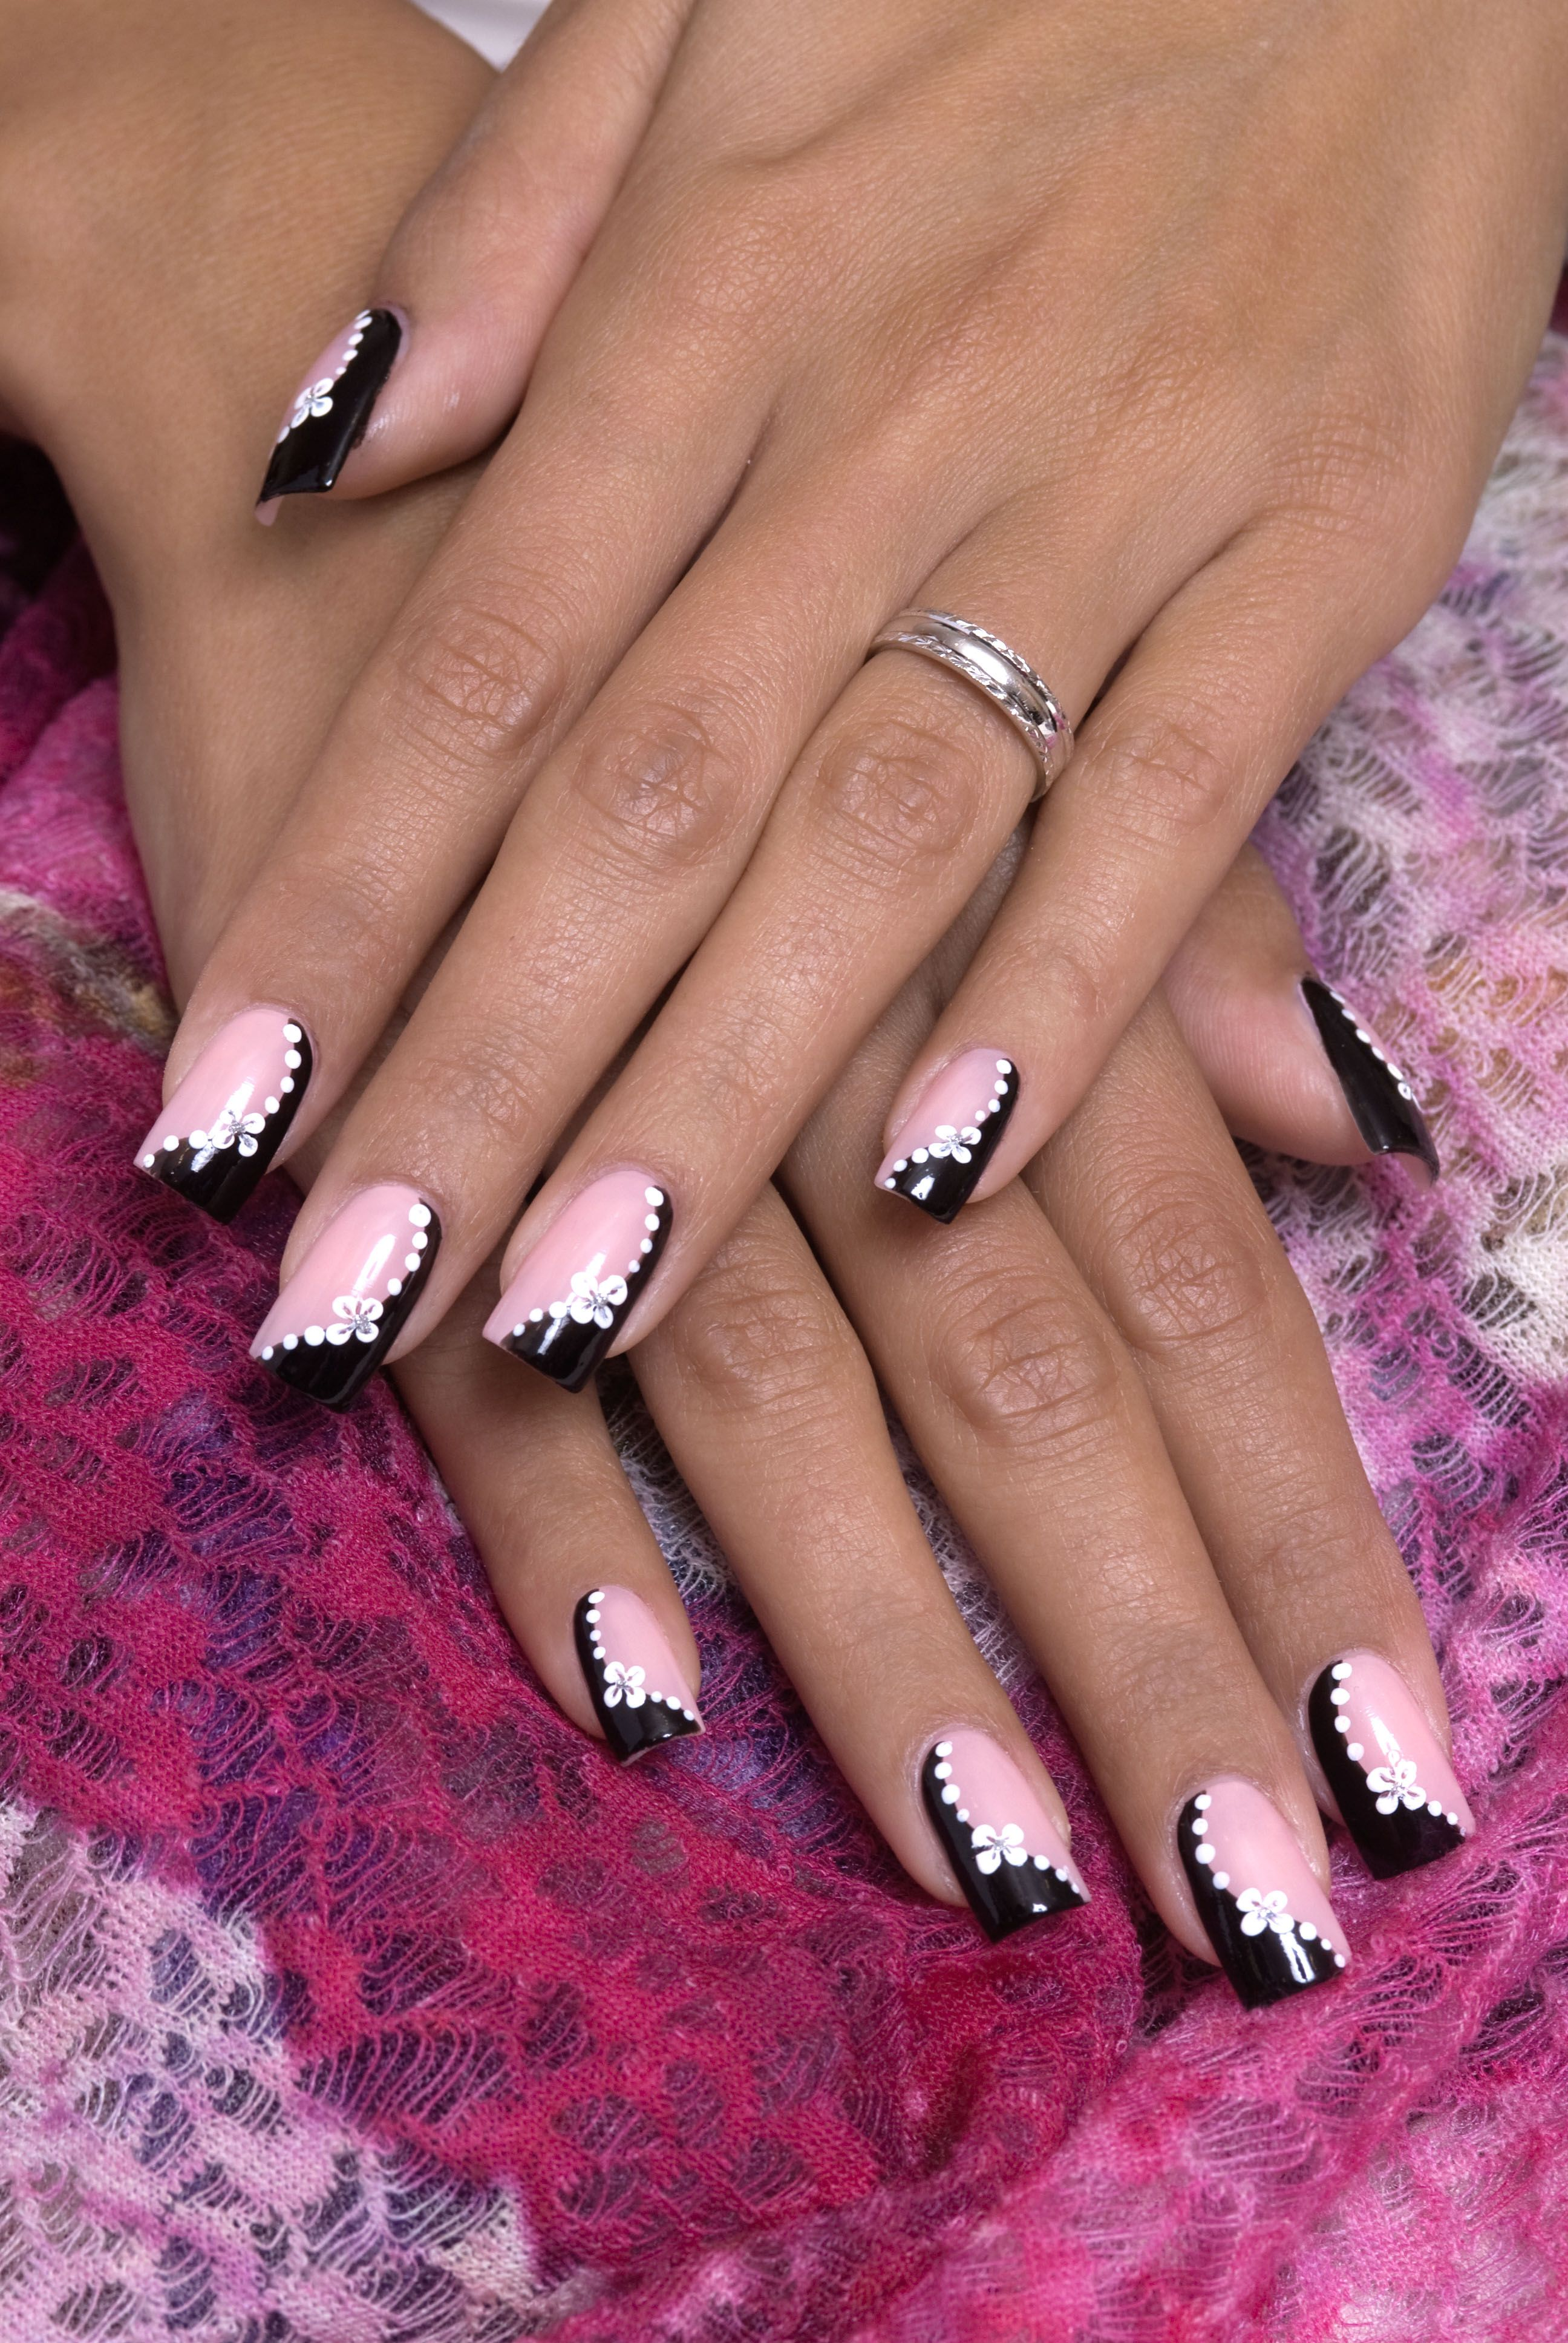 Get Beautiful Nails By Following Easy Tips Nails Pinterest